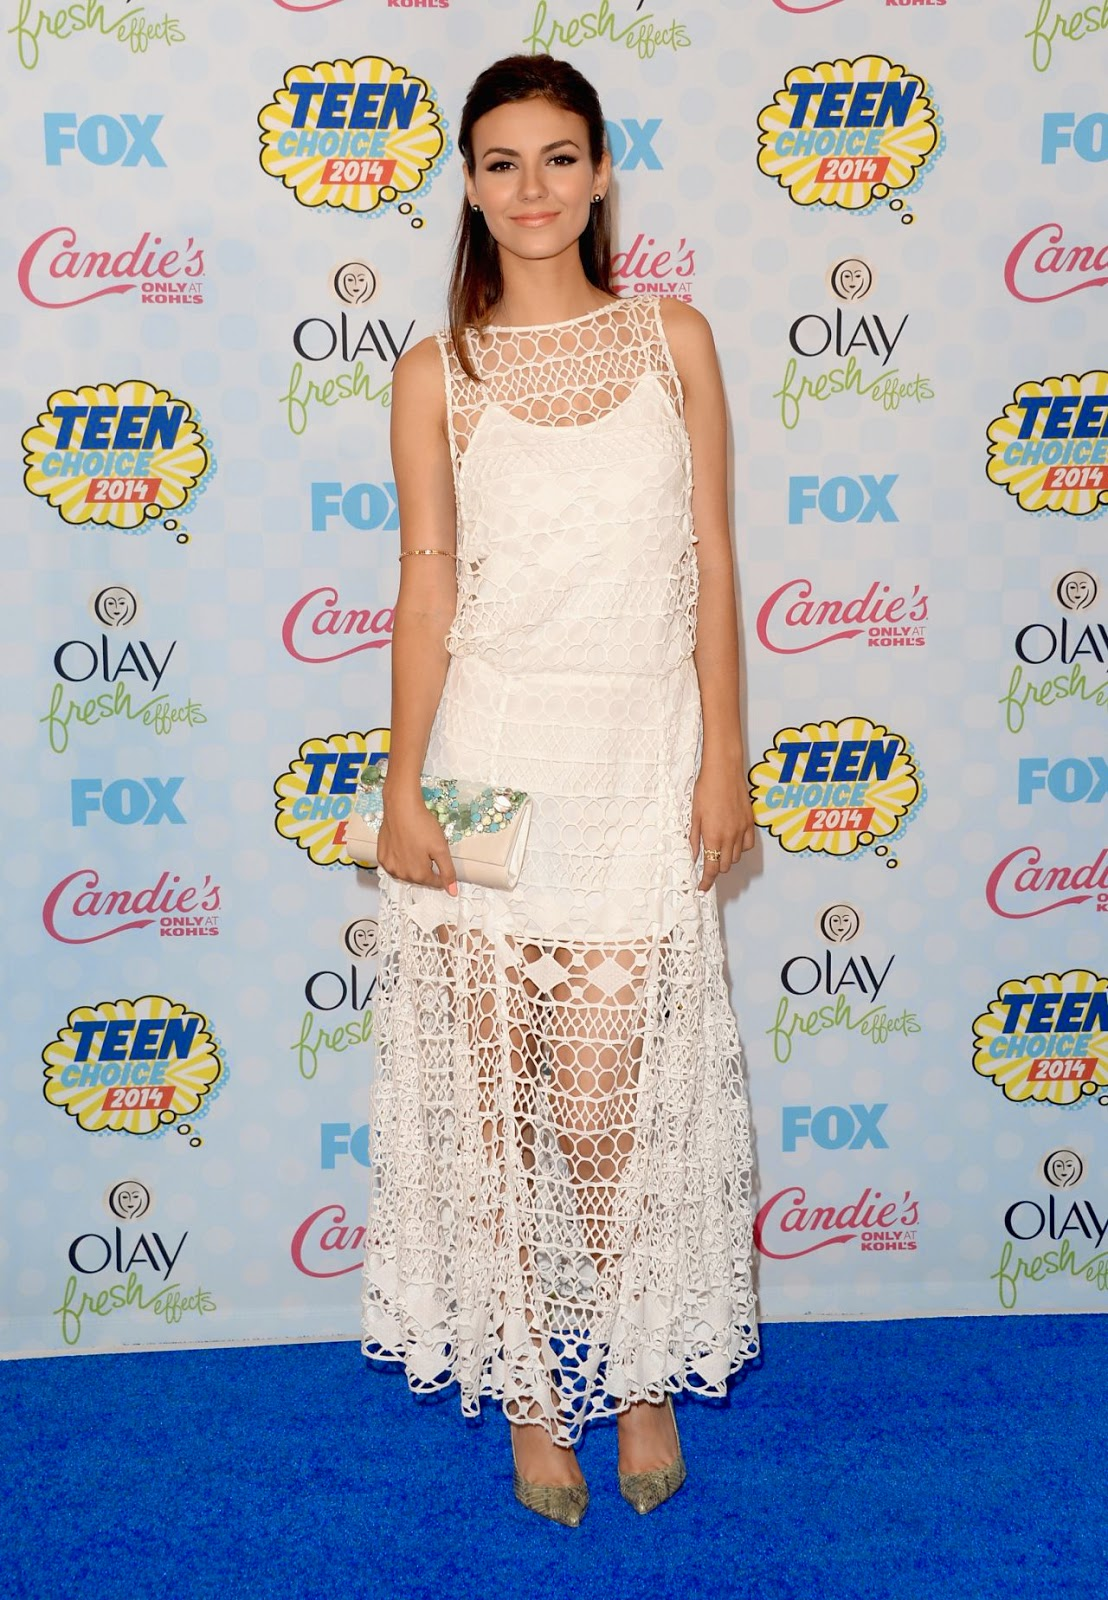 Victoria Justice is angelic in white at the 2014 Teen Choice Awards